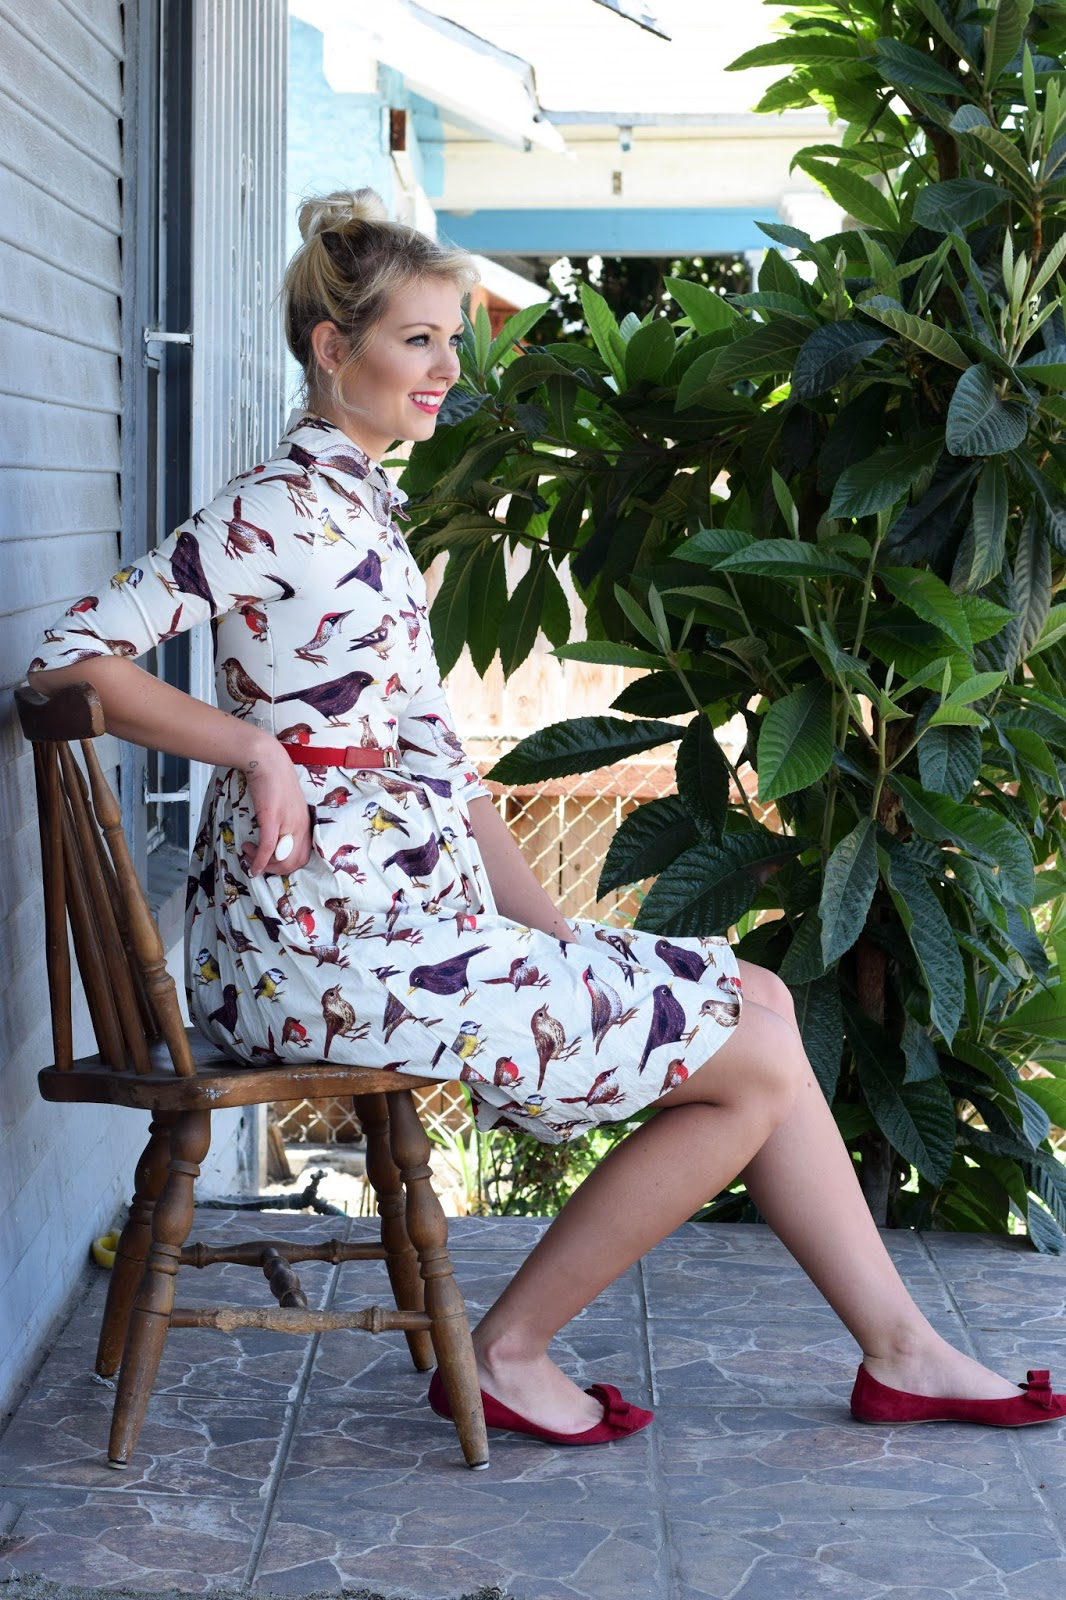 german blondy, why you should wear printed dresses, print dress, bird dress, zaful dress, bird, maxi dress, red dress, red shoes